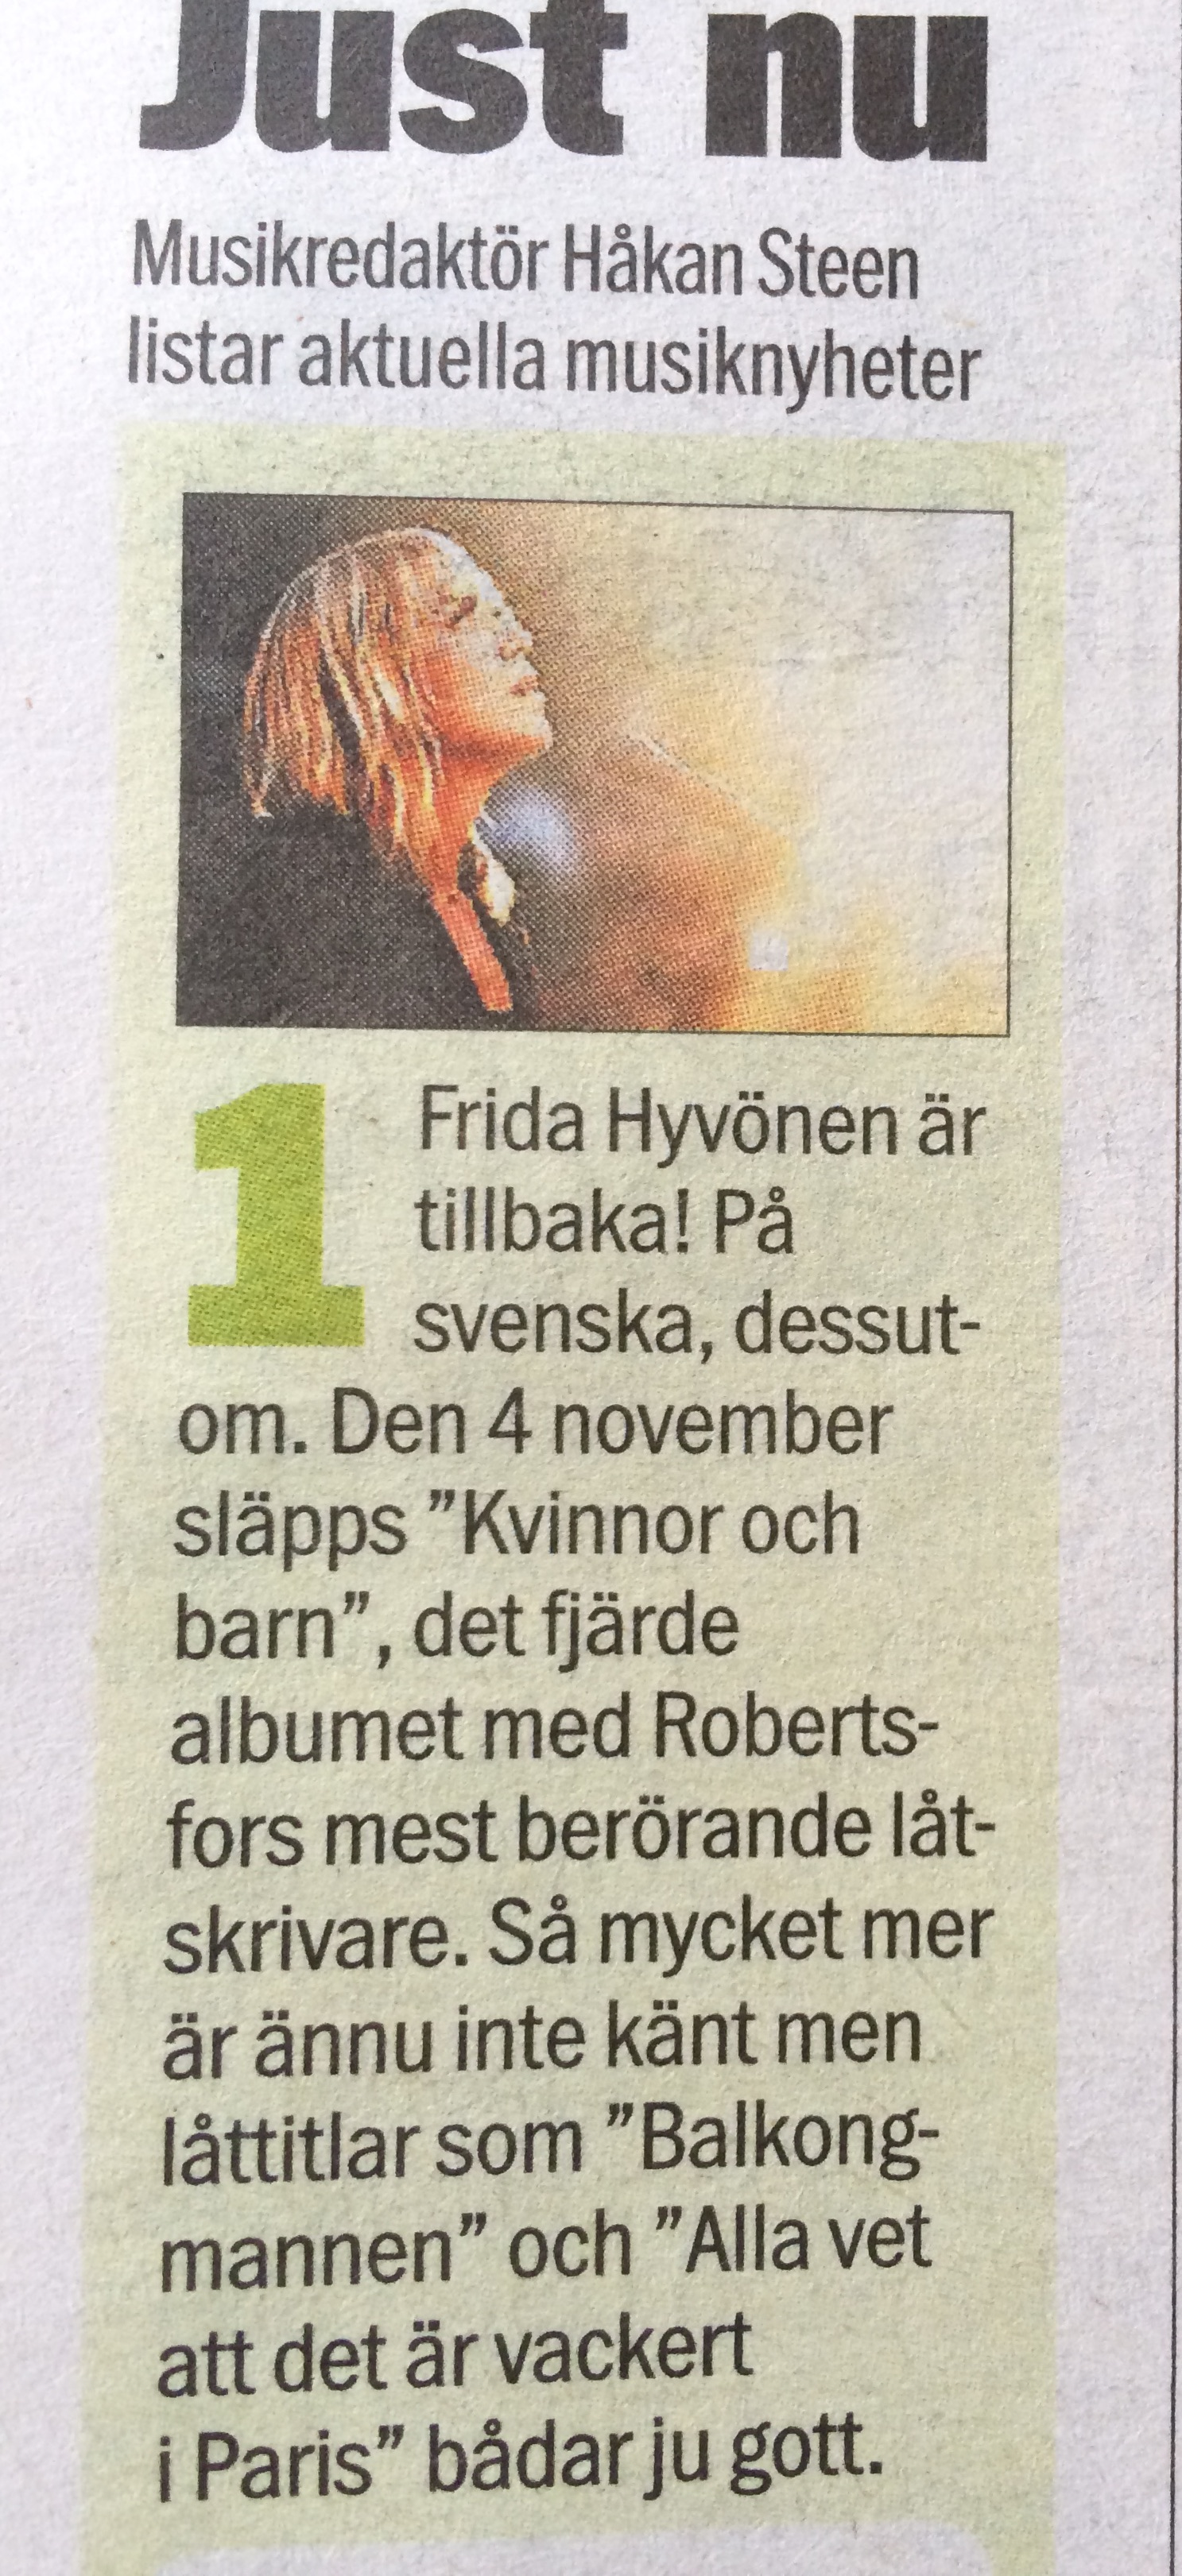 Aftonbladet %22just nu%22 - Frida Hyvönen.jpeg